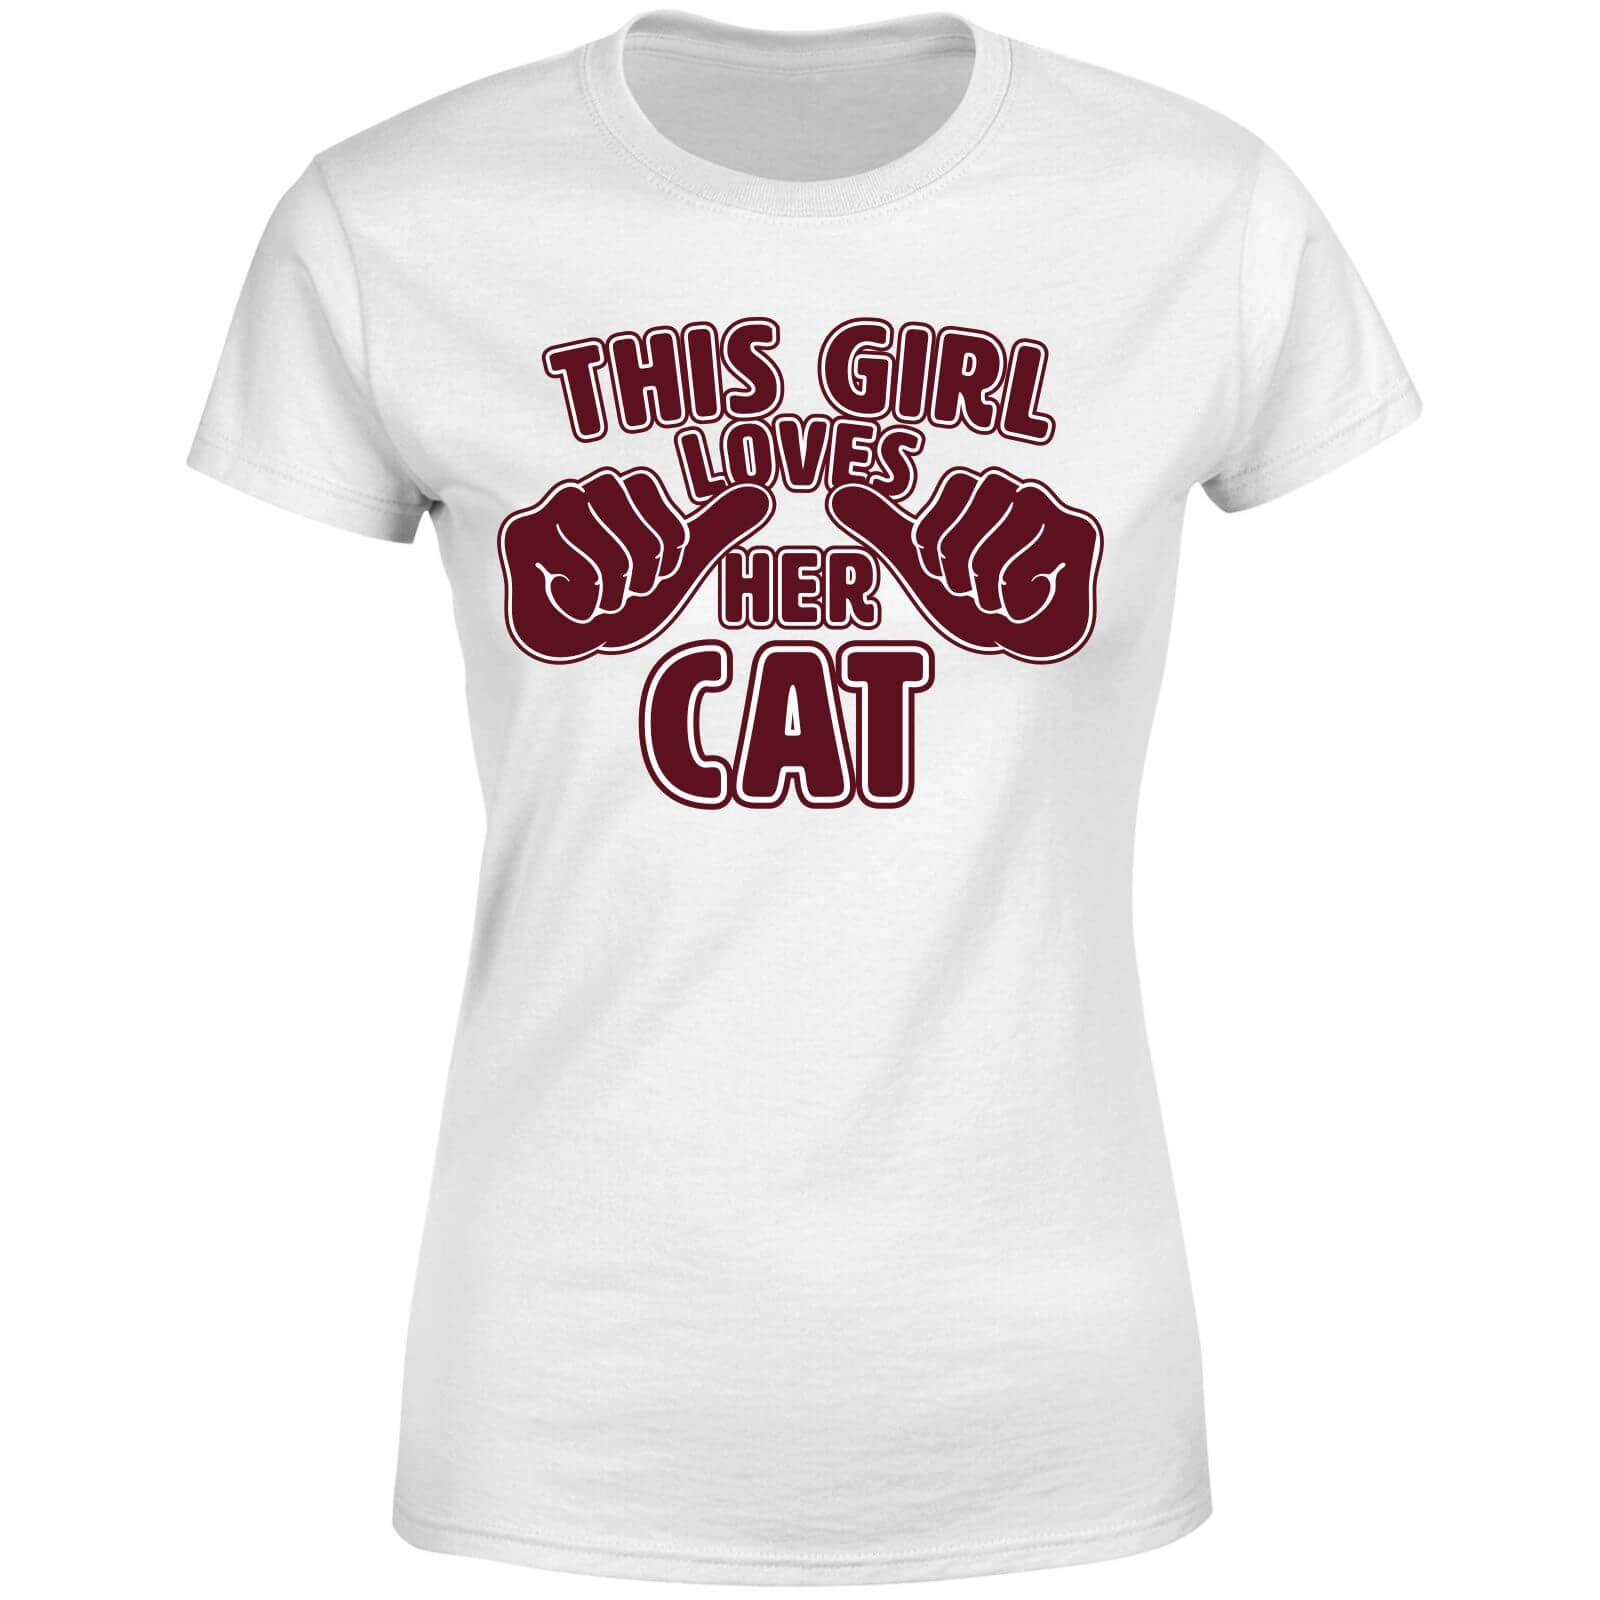 The Pet Collection This Girl Loves Her Cat Women's T-Shirt - White - 4XL - White